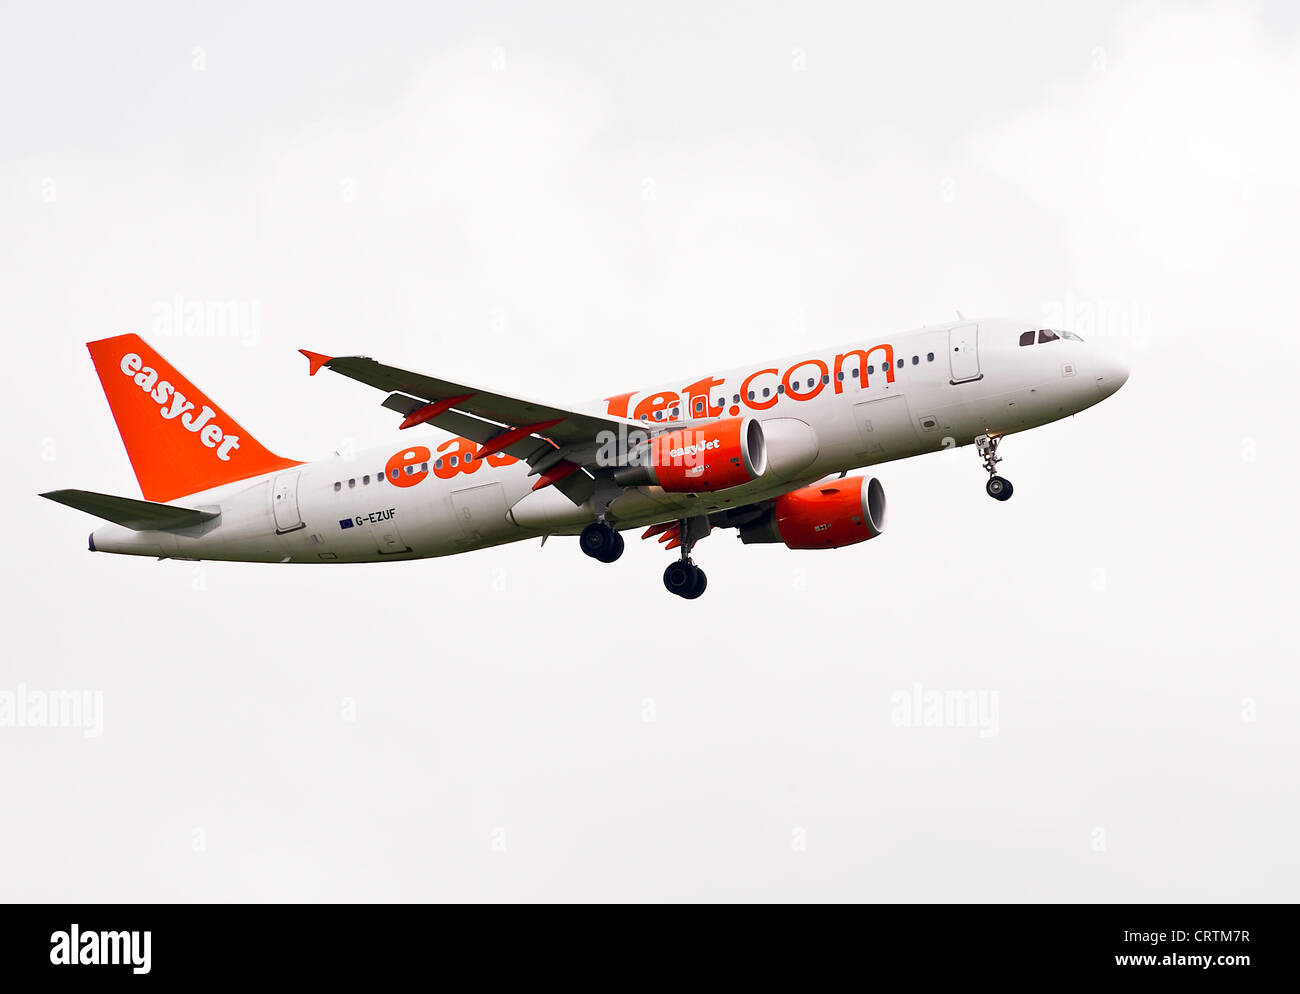 EasyJet Airbus A320-214 Airliner G-EZUF on Approach to London Gatwick Airport West Sussex England United Kingdom - Stock Image